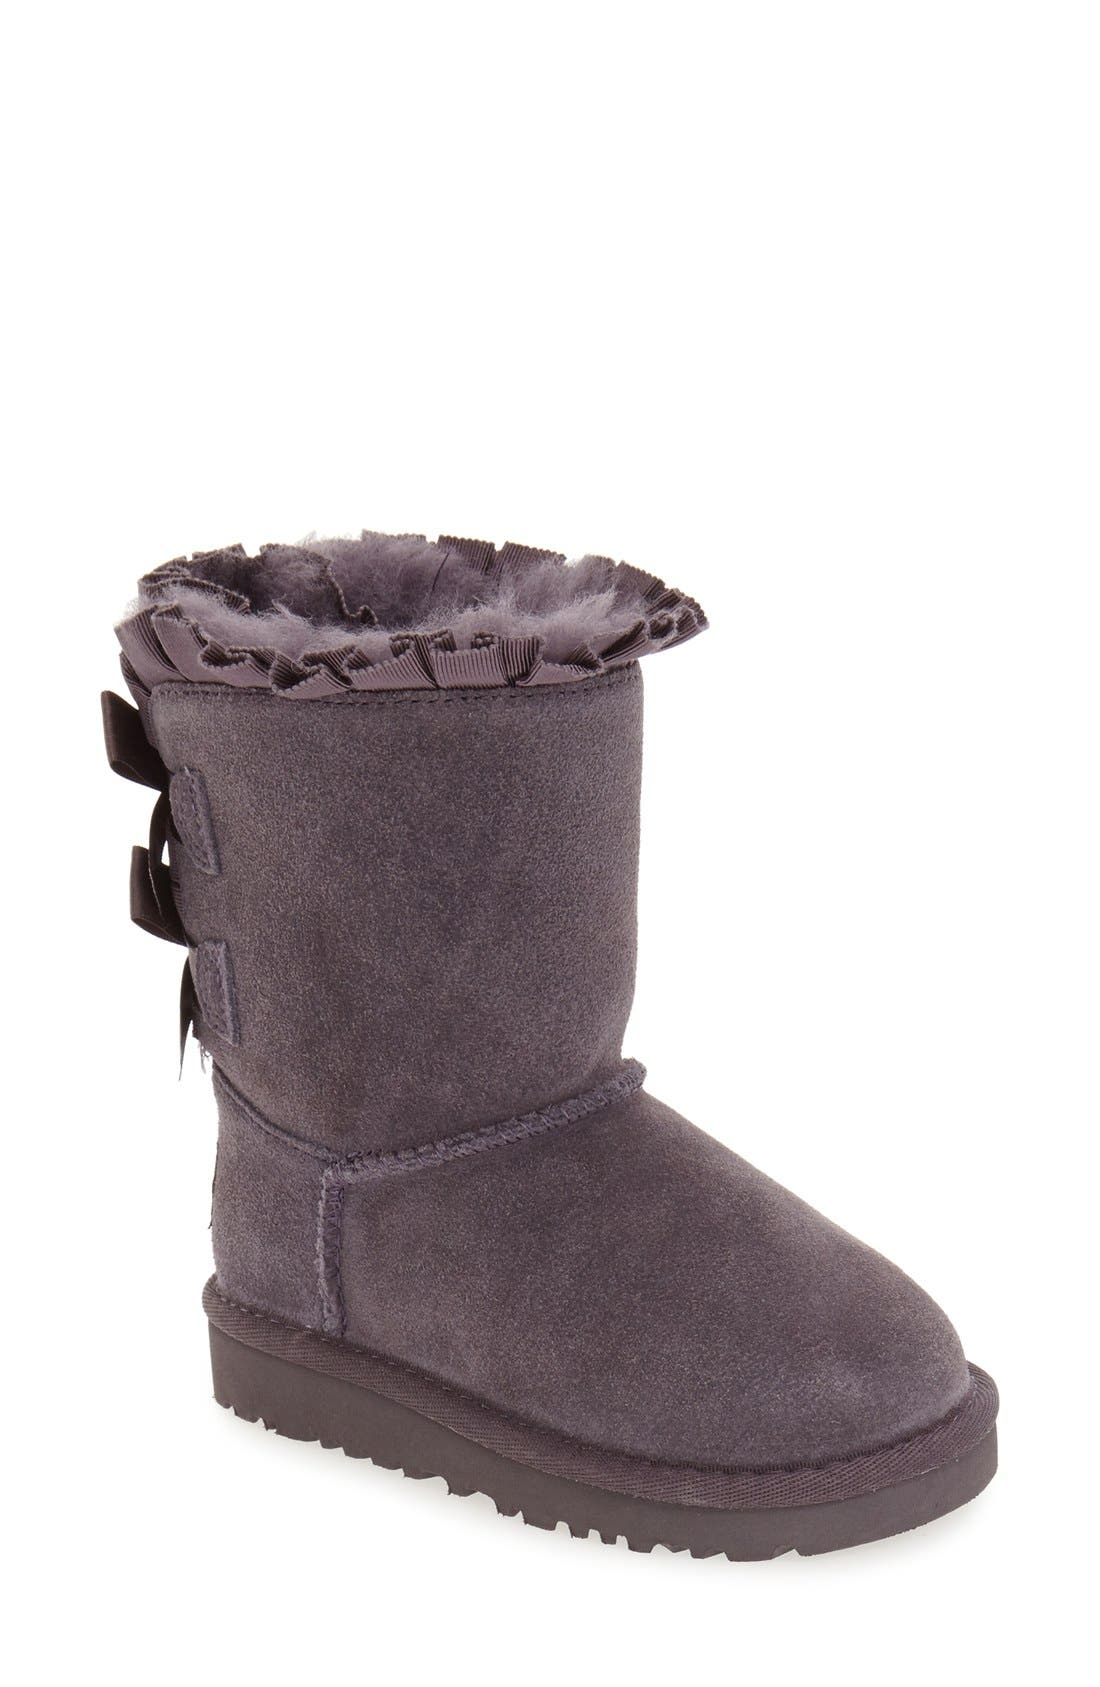 Alternate Image 1 Selected - UGG® 'Bailey Bow Ruffles' Genuine Shearling Lined Boot (Walker, Toddler & Little Kid)